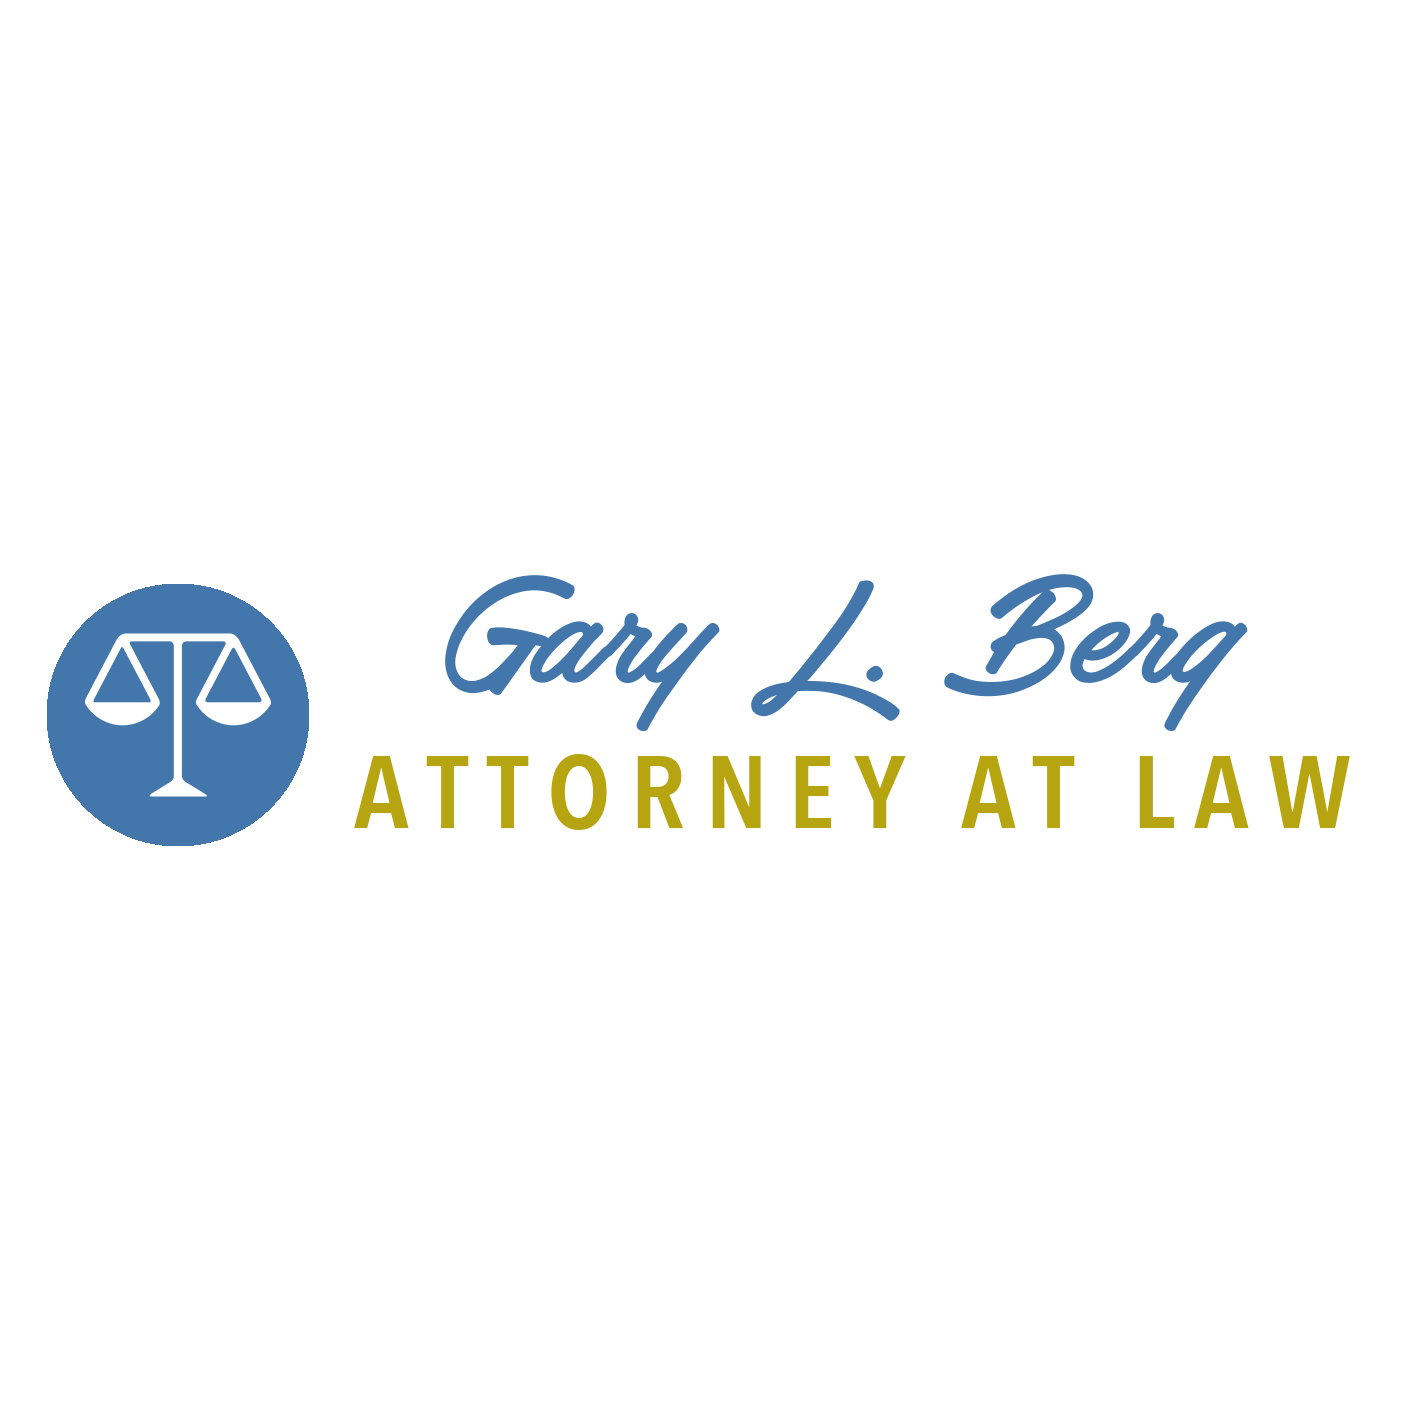 Gary L. Berg Attorney at Law